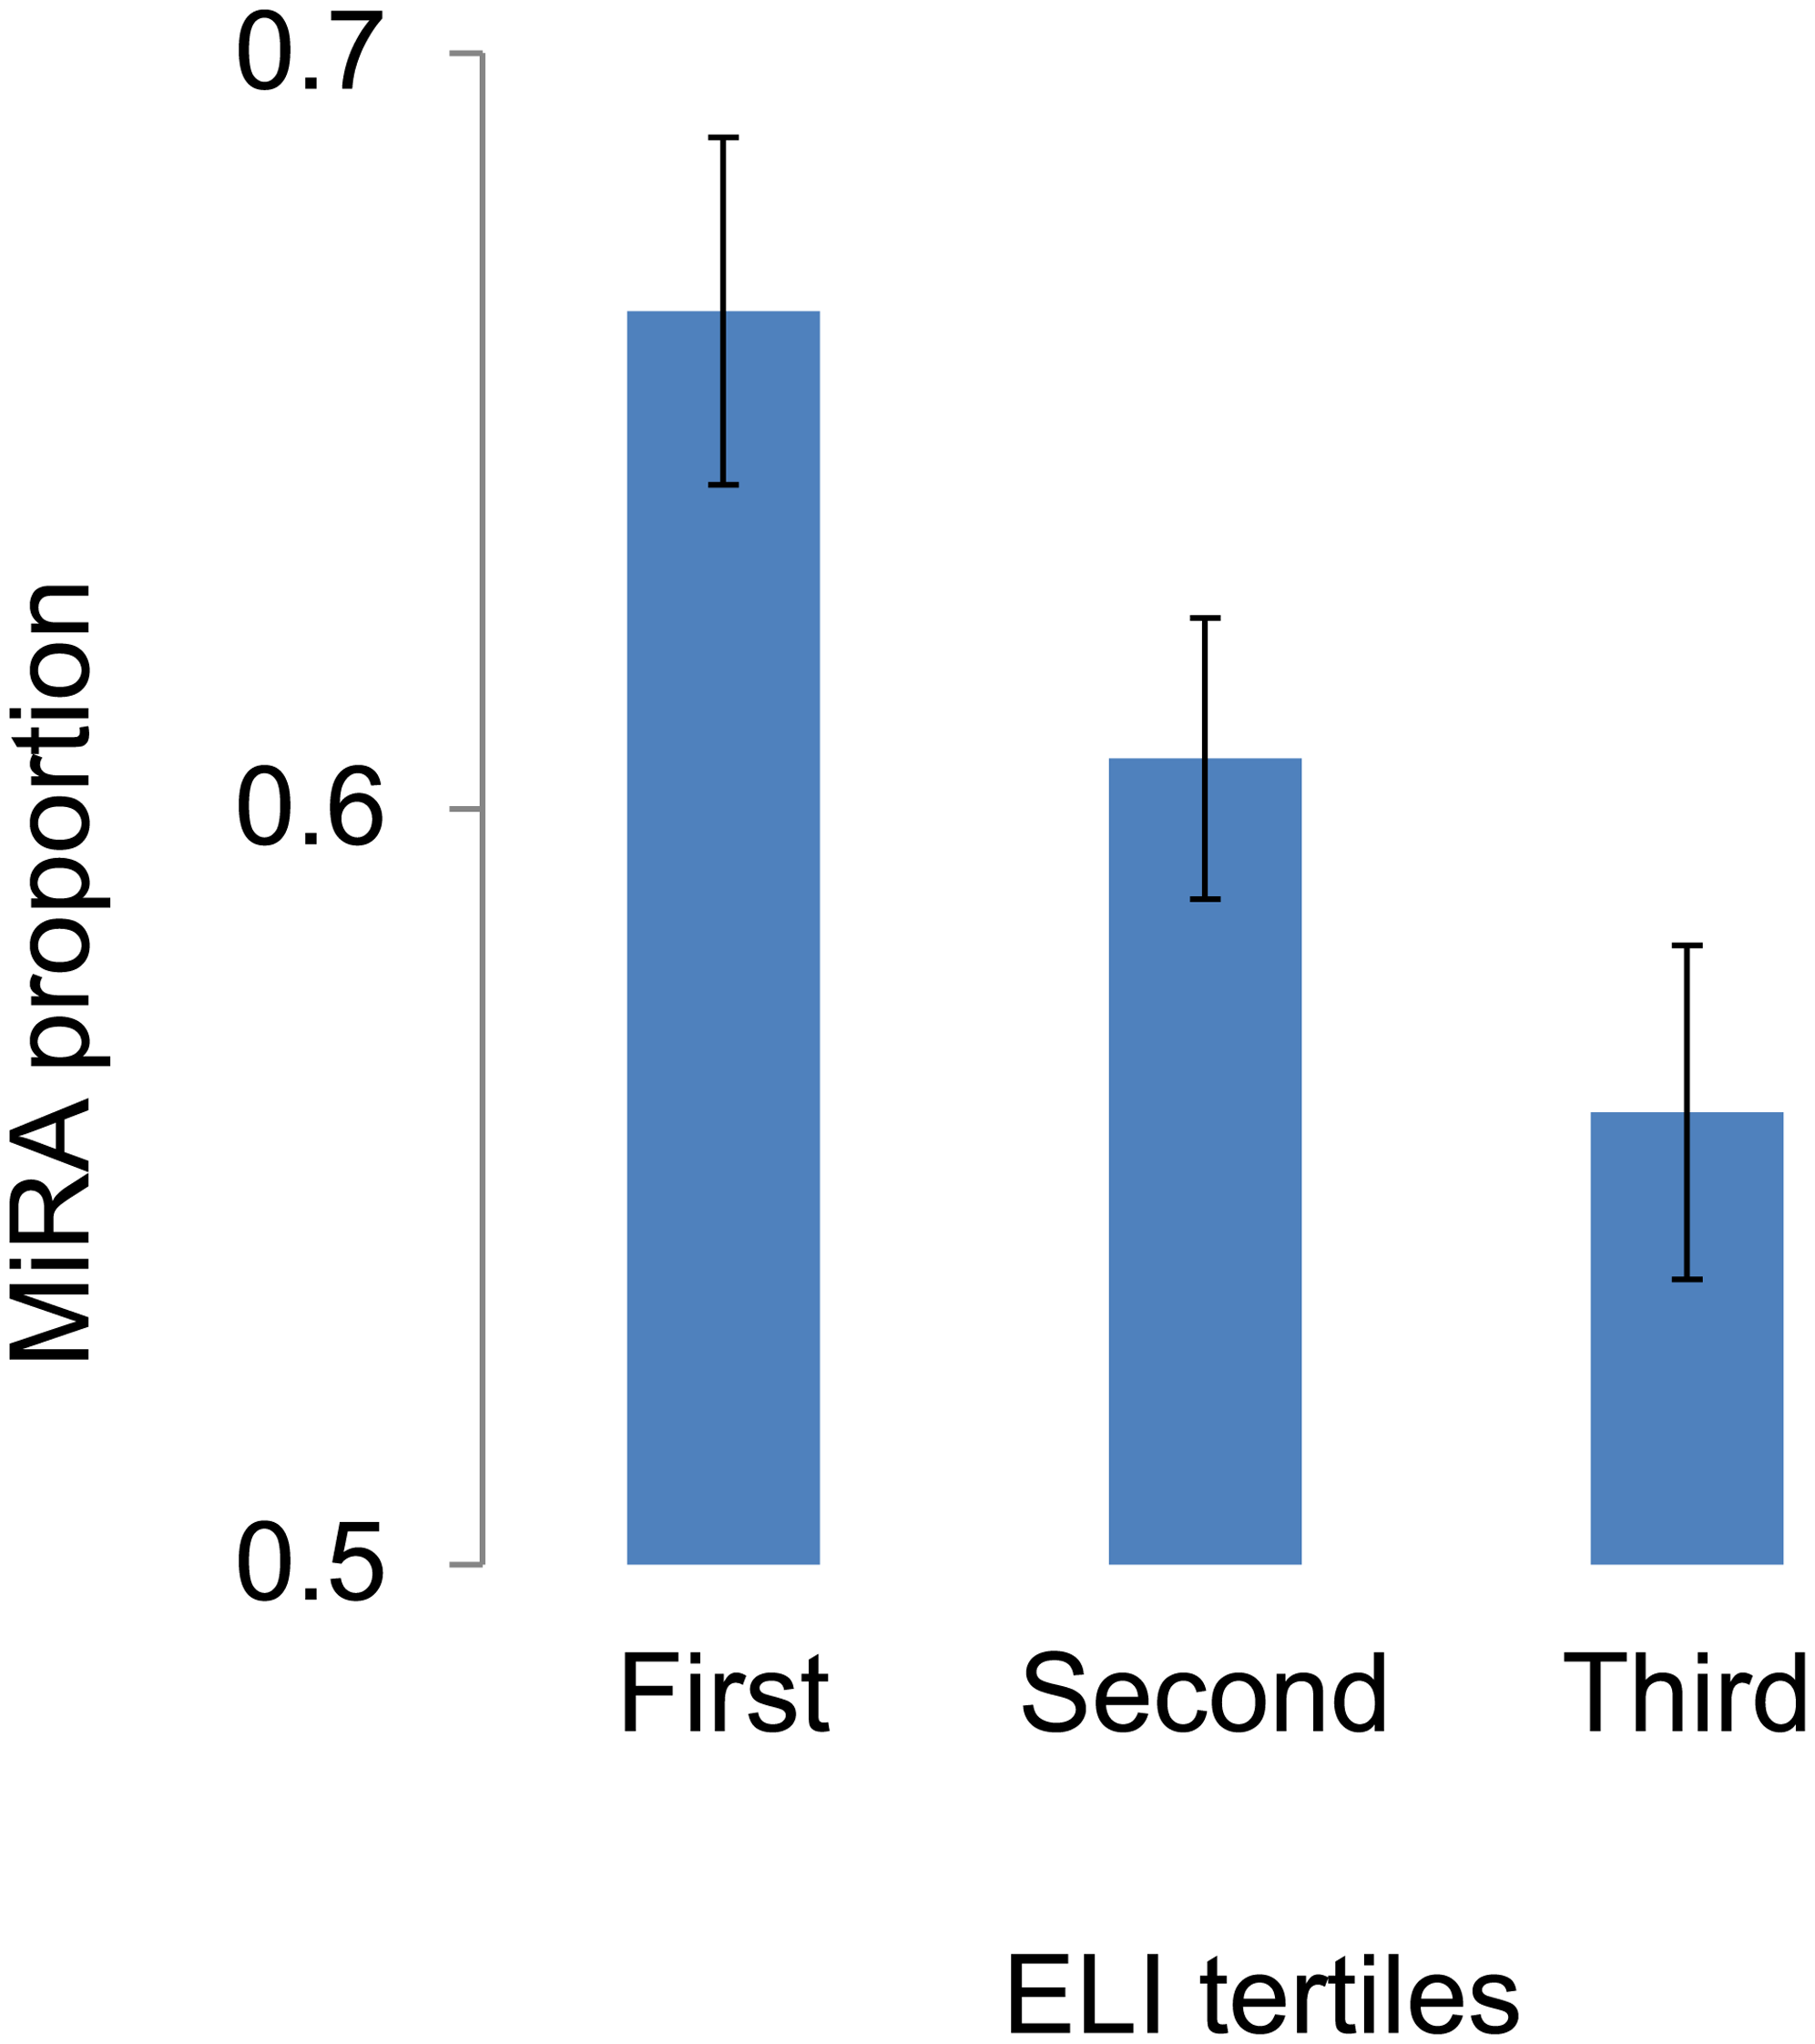 The proportions of minor risk alleles (MiRA) in the first, second and third tertiles defined based on the environment/lifestyle index (ELI).